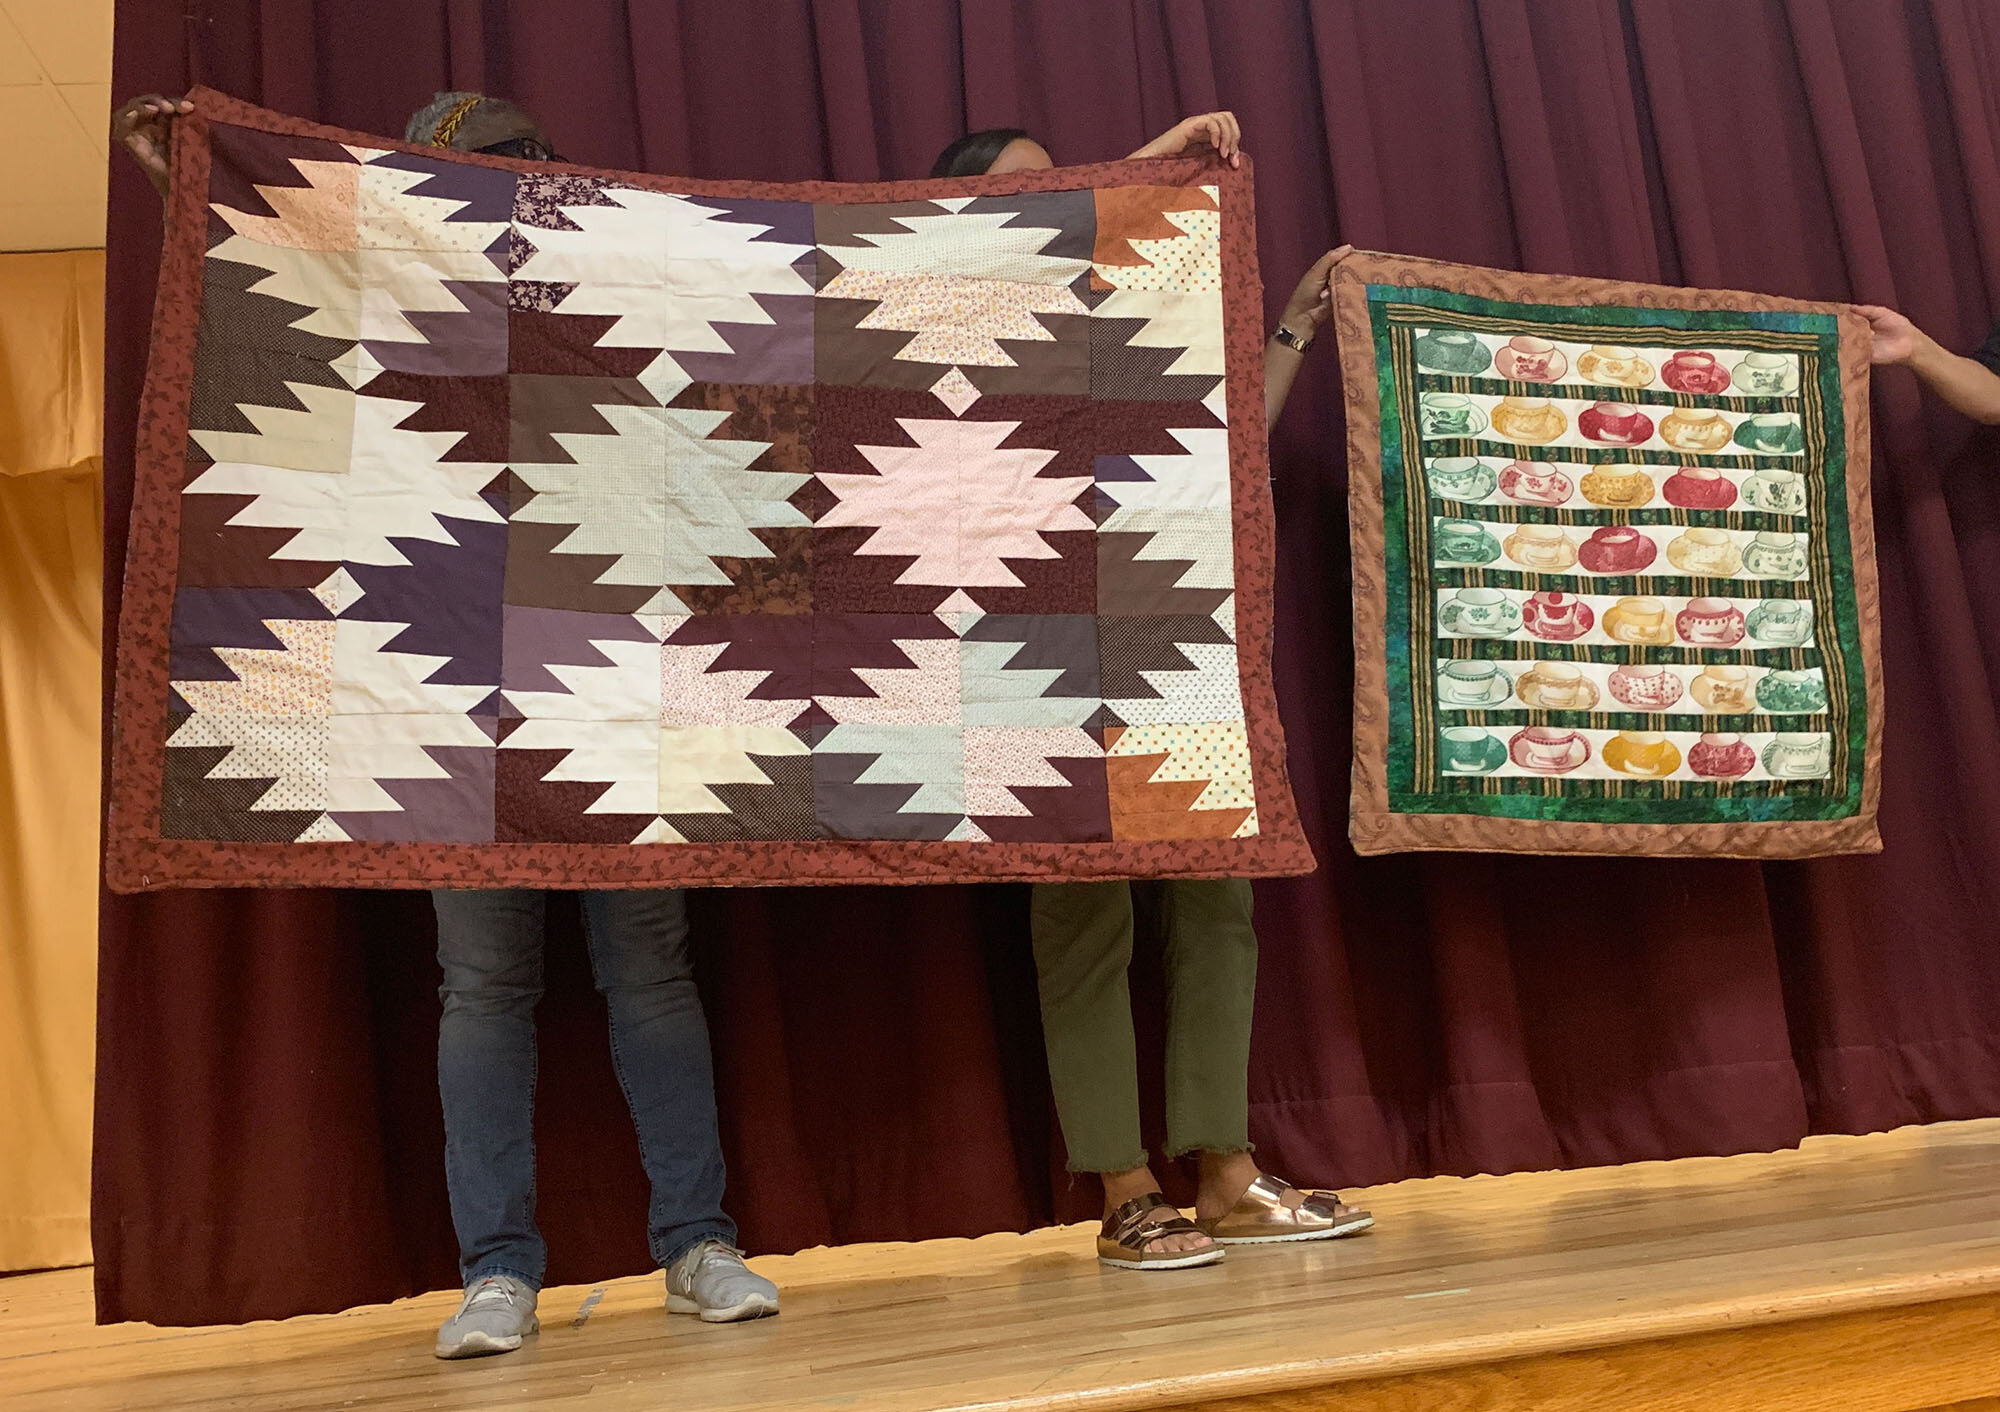 Two quilts by S. Judith Shea